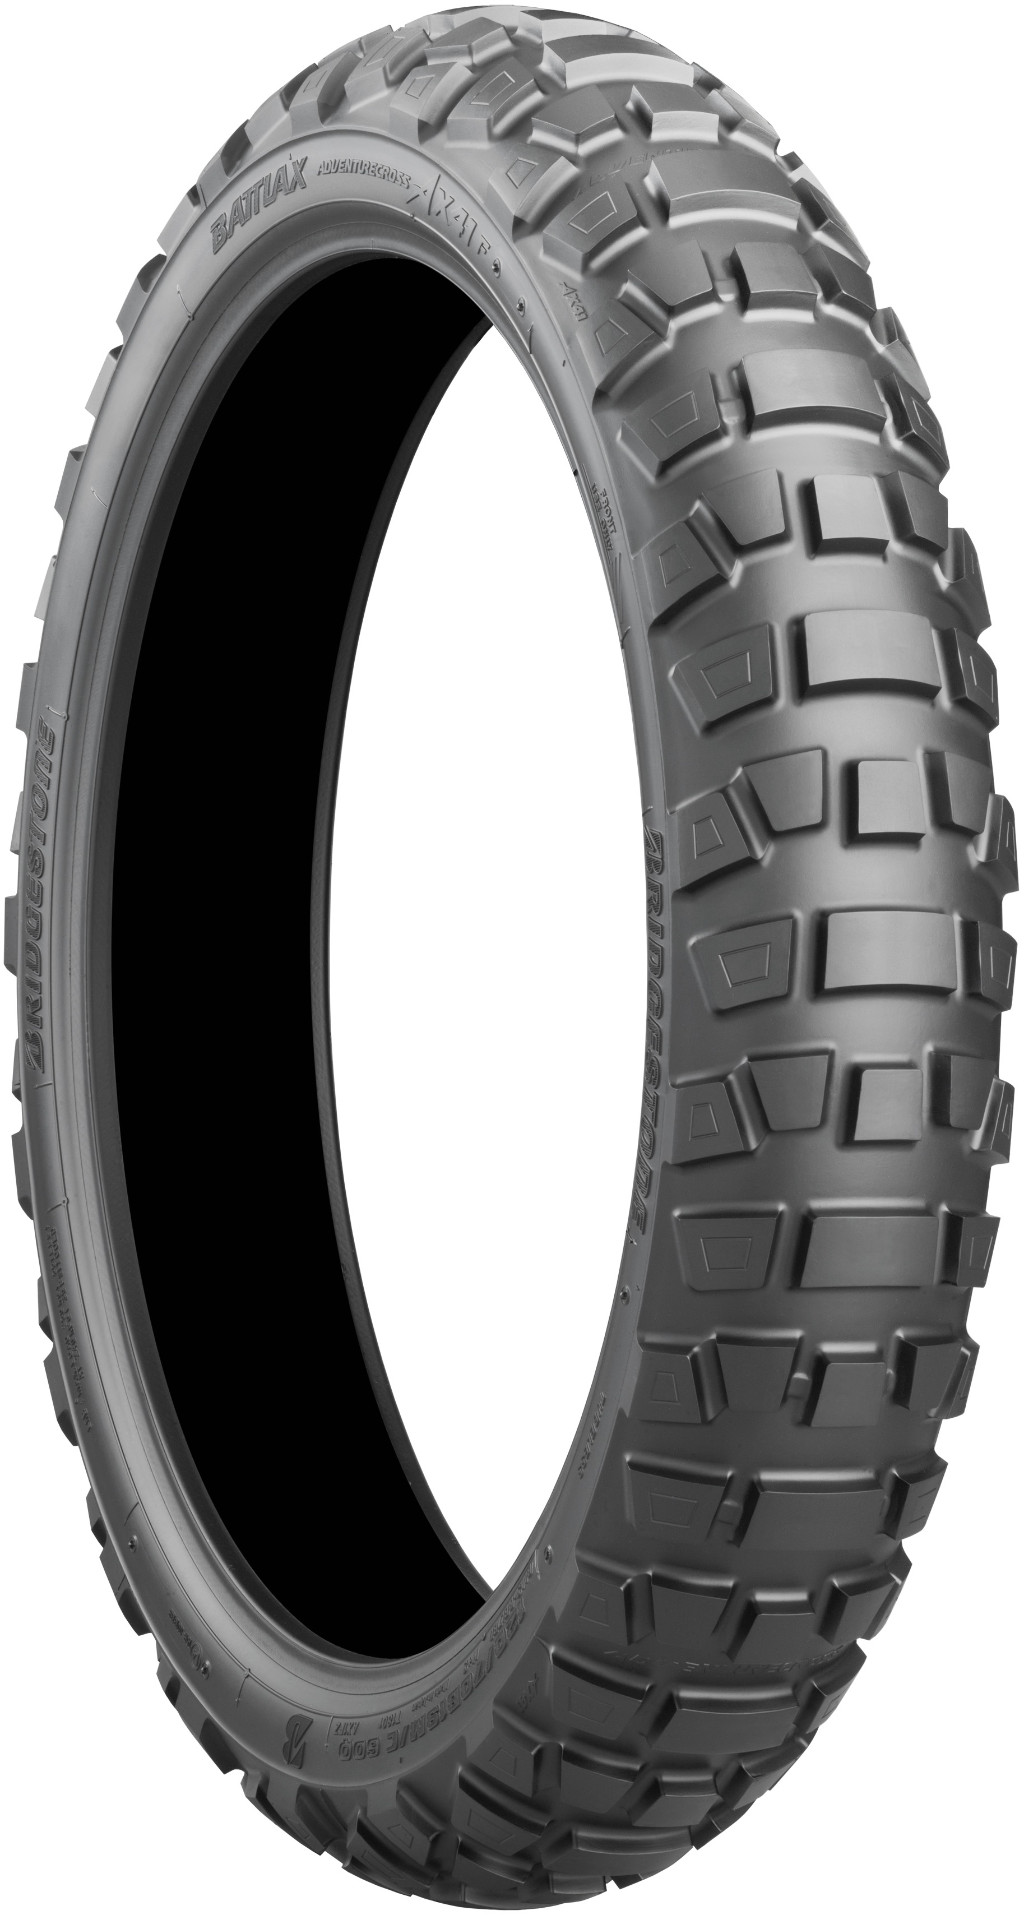 BRIDGESTONE ADVENTURECROSS BATTLAX AX41 [100/90 - 19М/С 57Q] BATTLAX Adventu